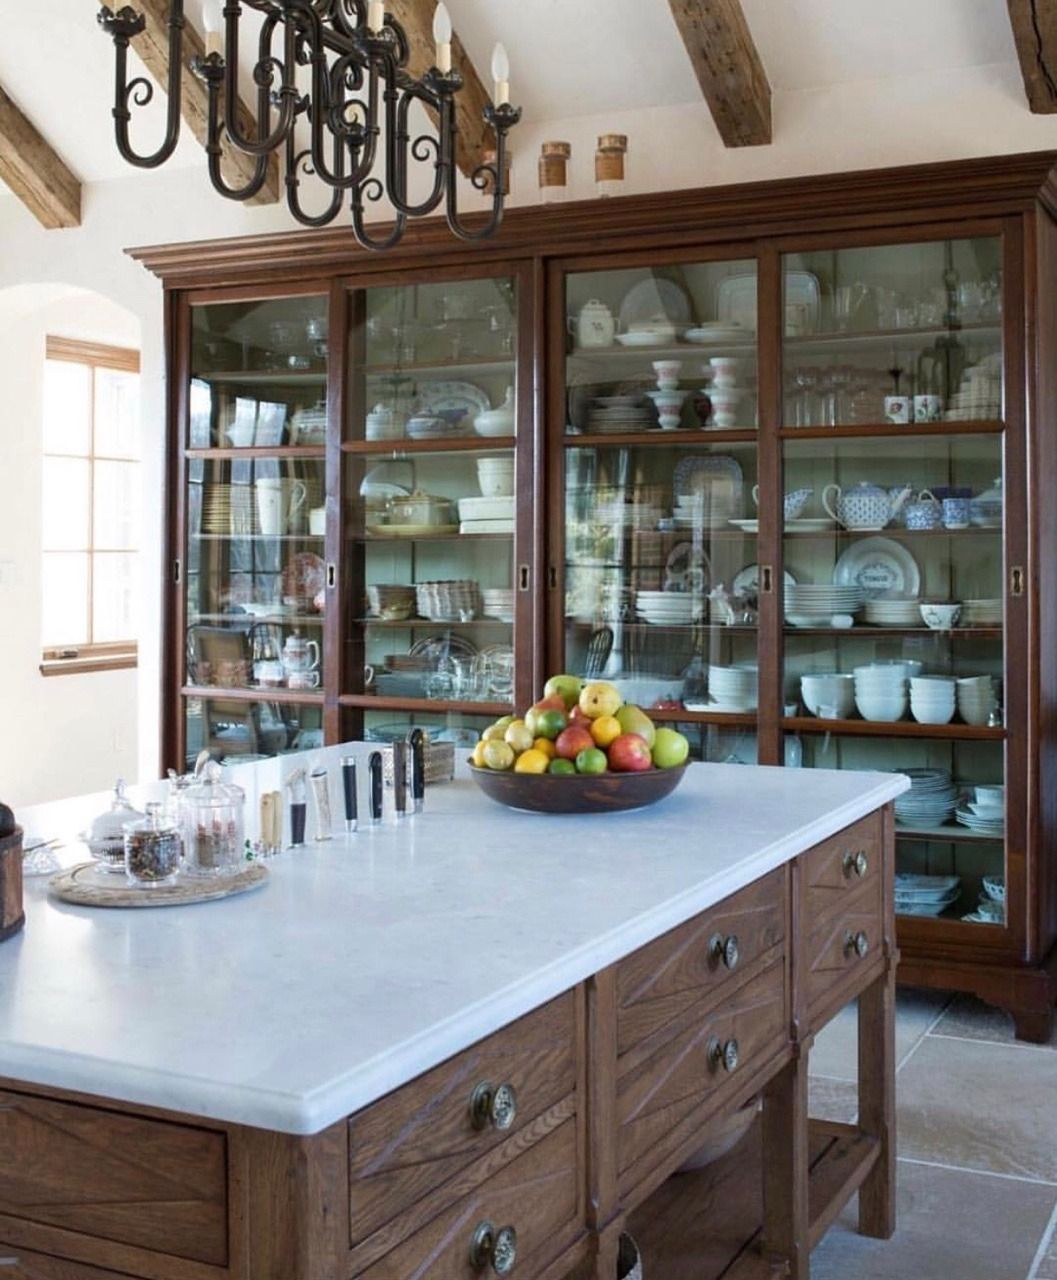 New Look Kitchen And Bath: Pin On Farm House Style